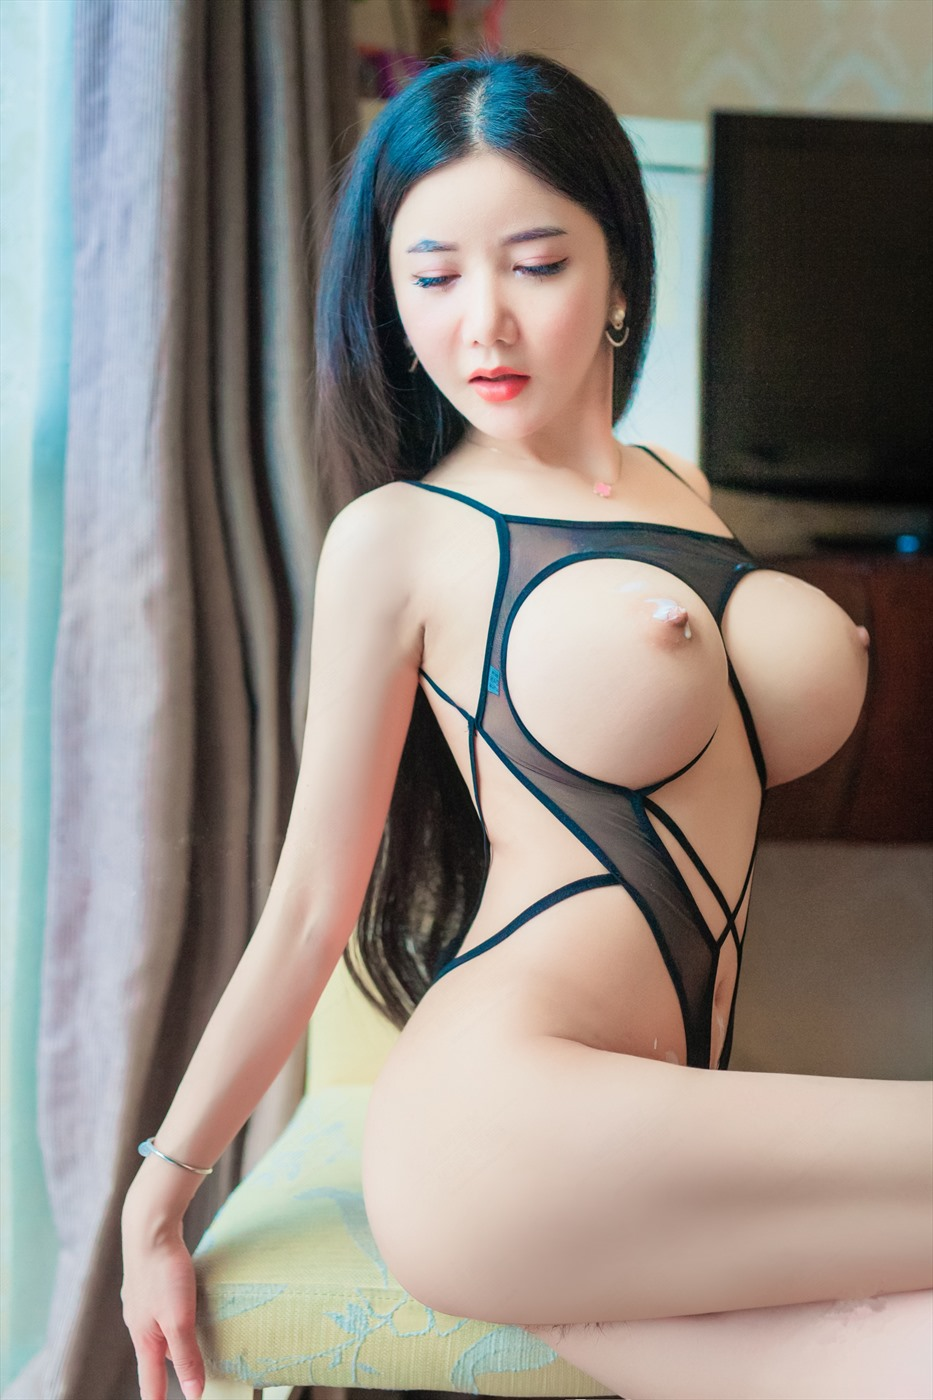 Nude China topless pic